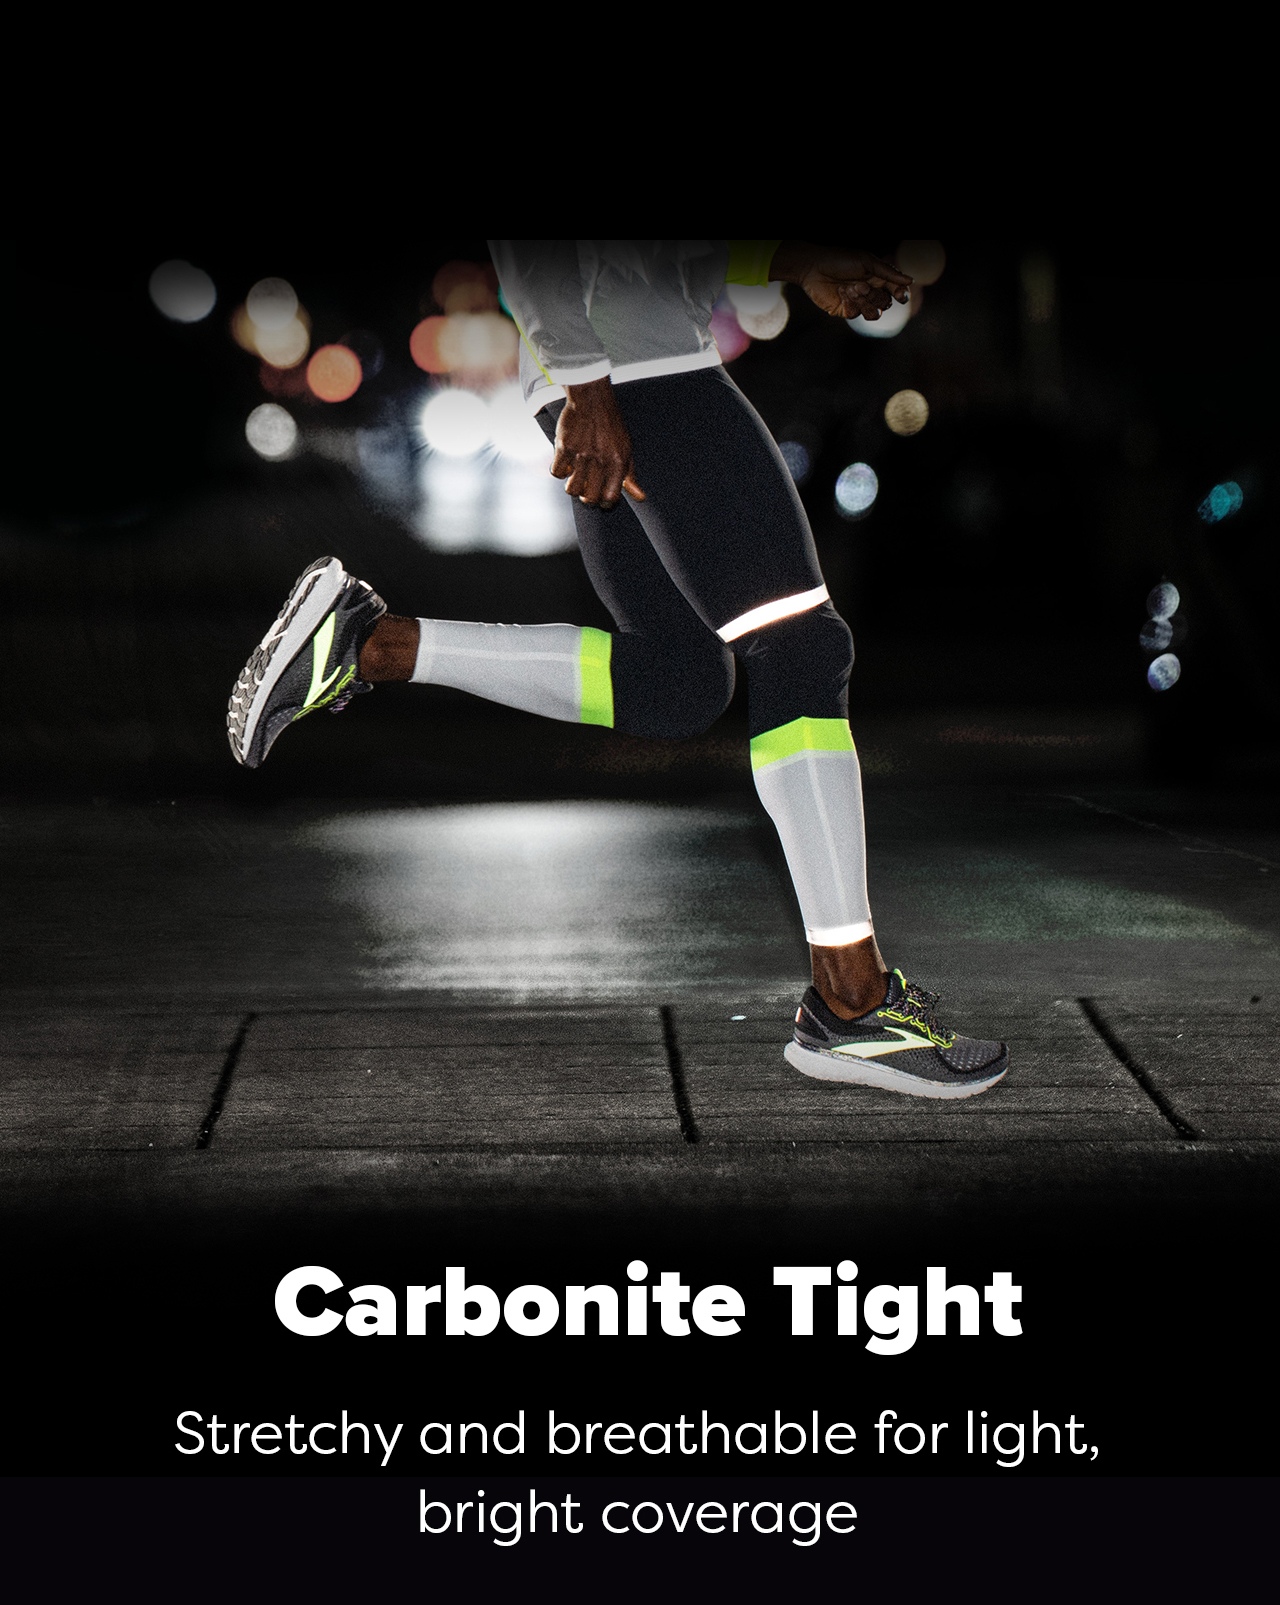 Carbonite Tight - Stretchy and breathable for light, bright coverage